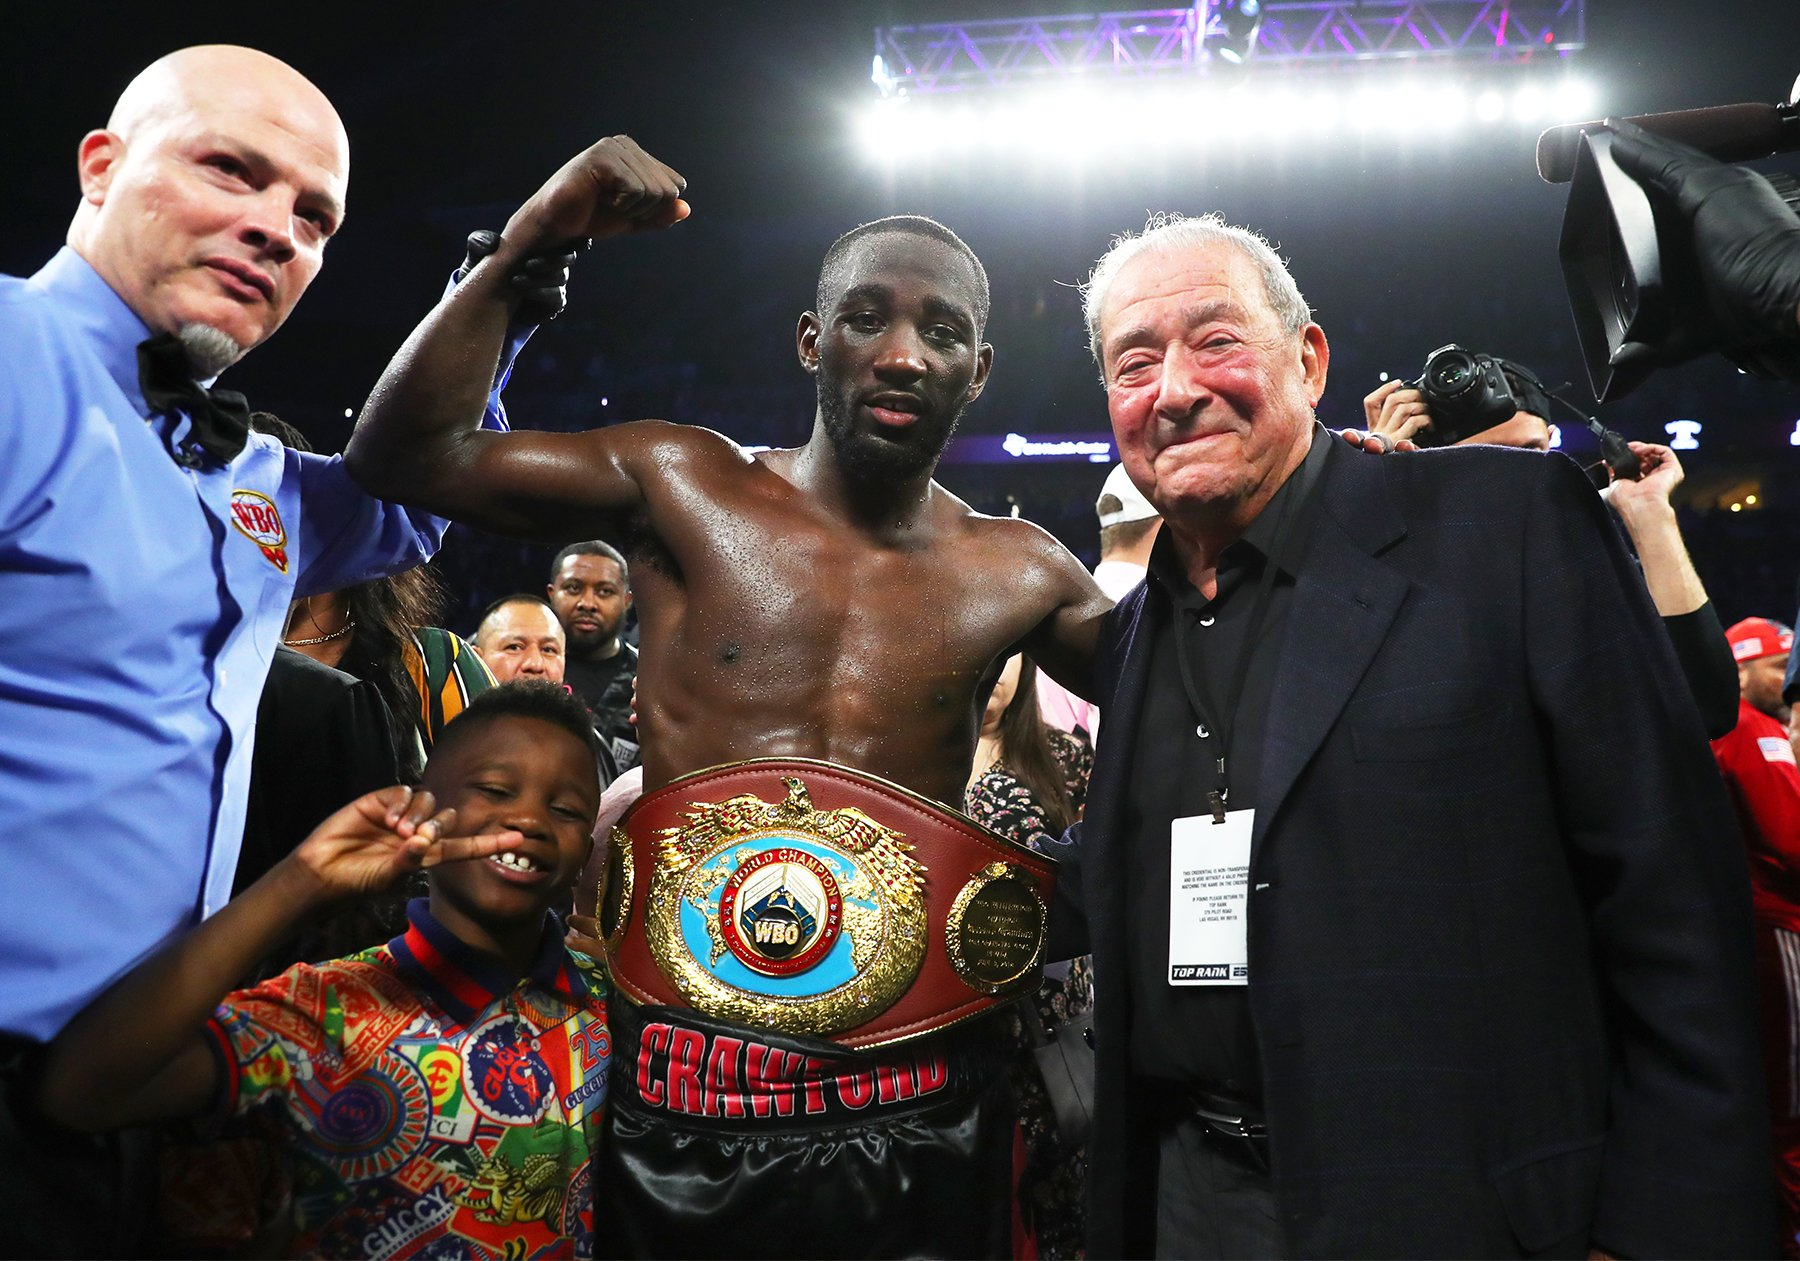 WBO welterweight titlist Terence Crawford (left) and Bob Arum of Top Rank